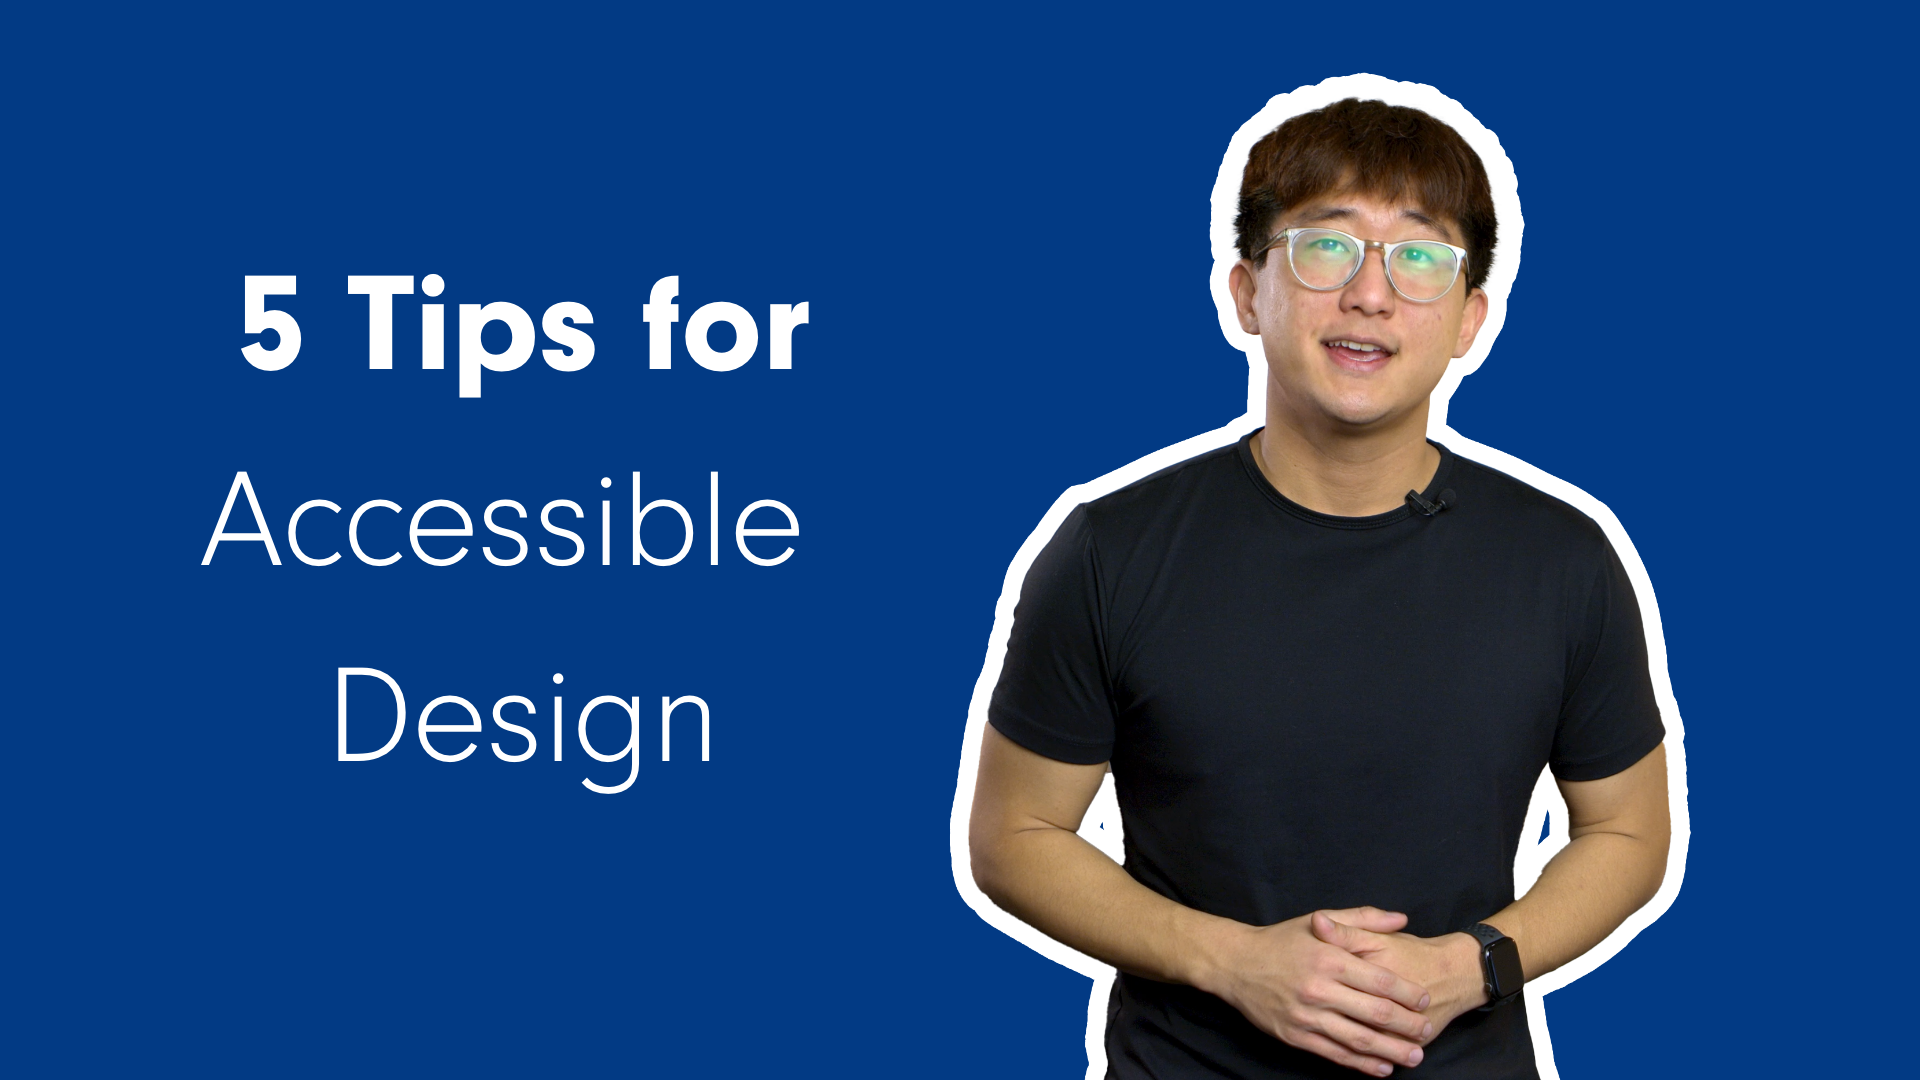 5 Tips to Help Make Your Designs More Accessible